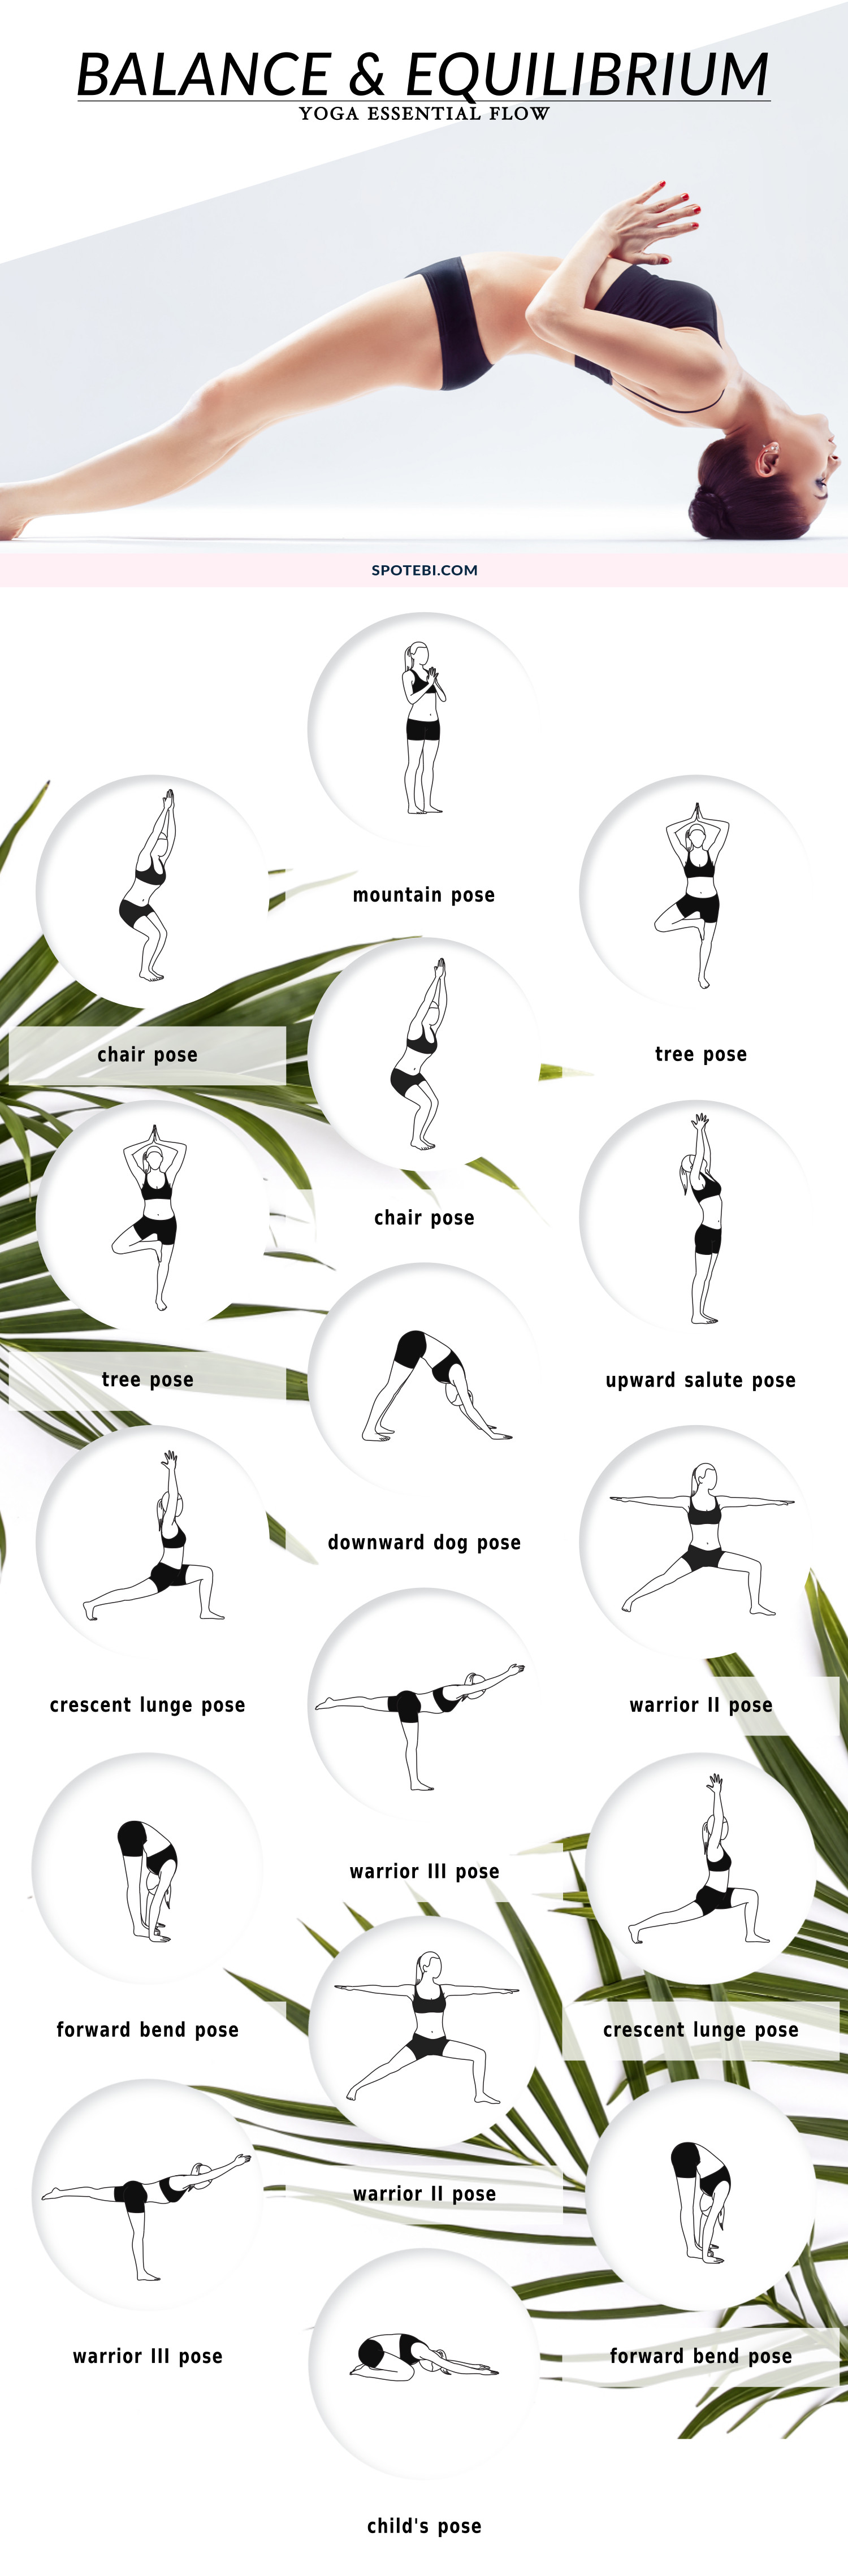 Boost balance and equilibrium, and reduce your risk of fall and injury with this 8-minute yoga flow. Repeat this sequence 2 or 3 times a week to improve muscle tone, flexibility, and reduce stress and anxiety. https://www.spotebi.com/yoga-sequences/balance-equilibrium/